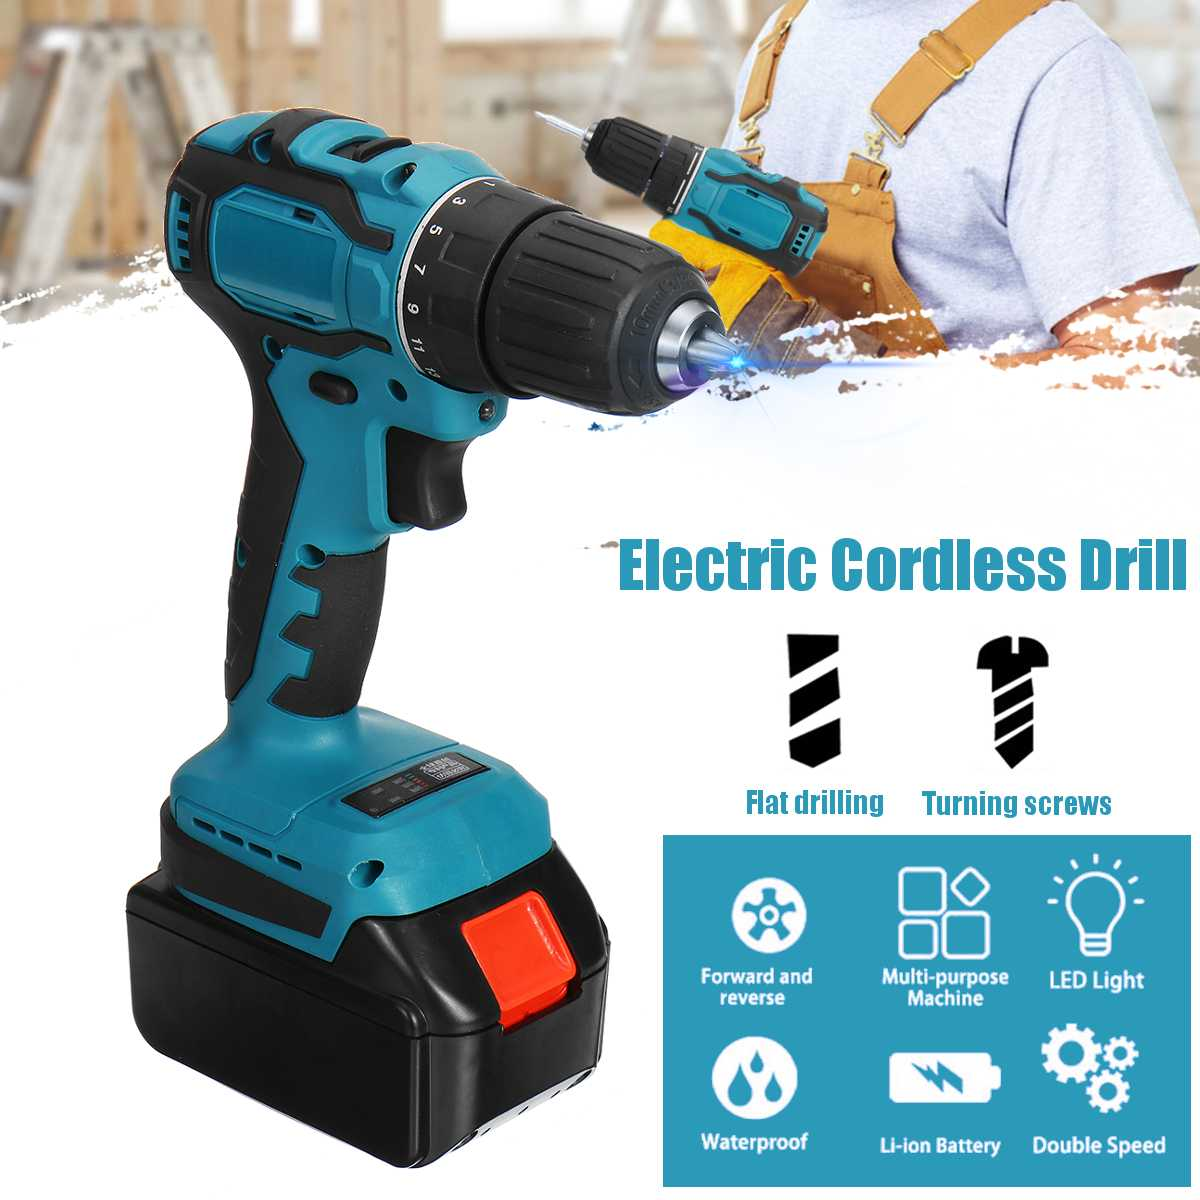 48V Cordless Electric Impact Drill 150Nm Torque Driver Kit Screwdriver Brushless LED Power Tools 6500mAh Battery With Box